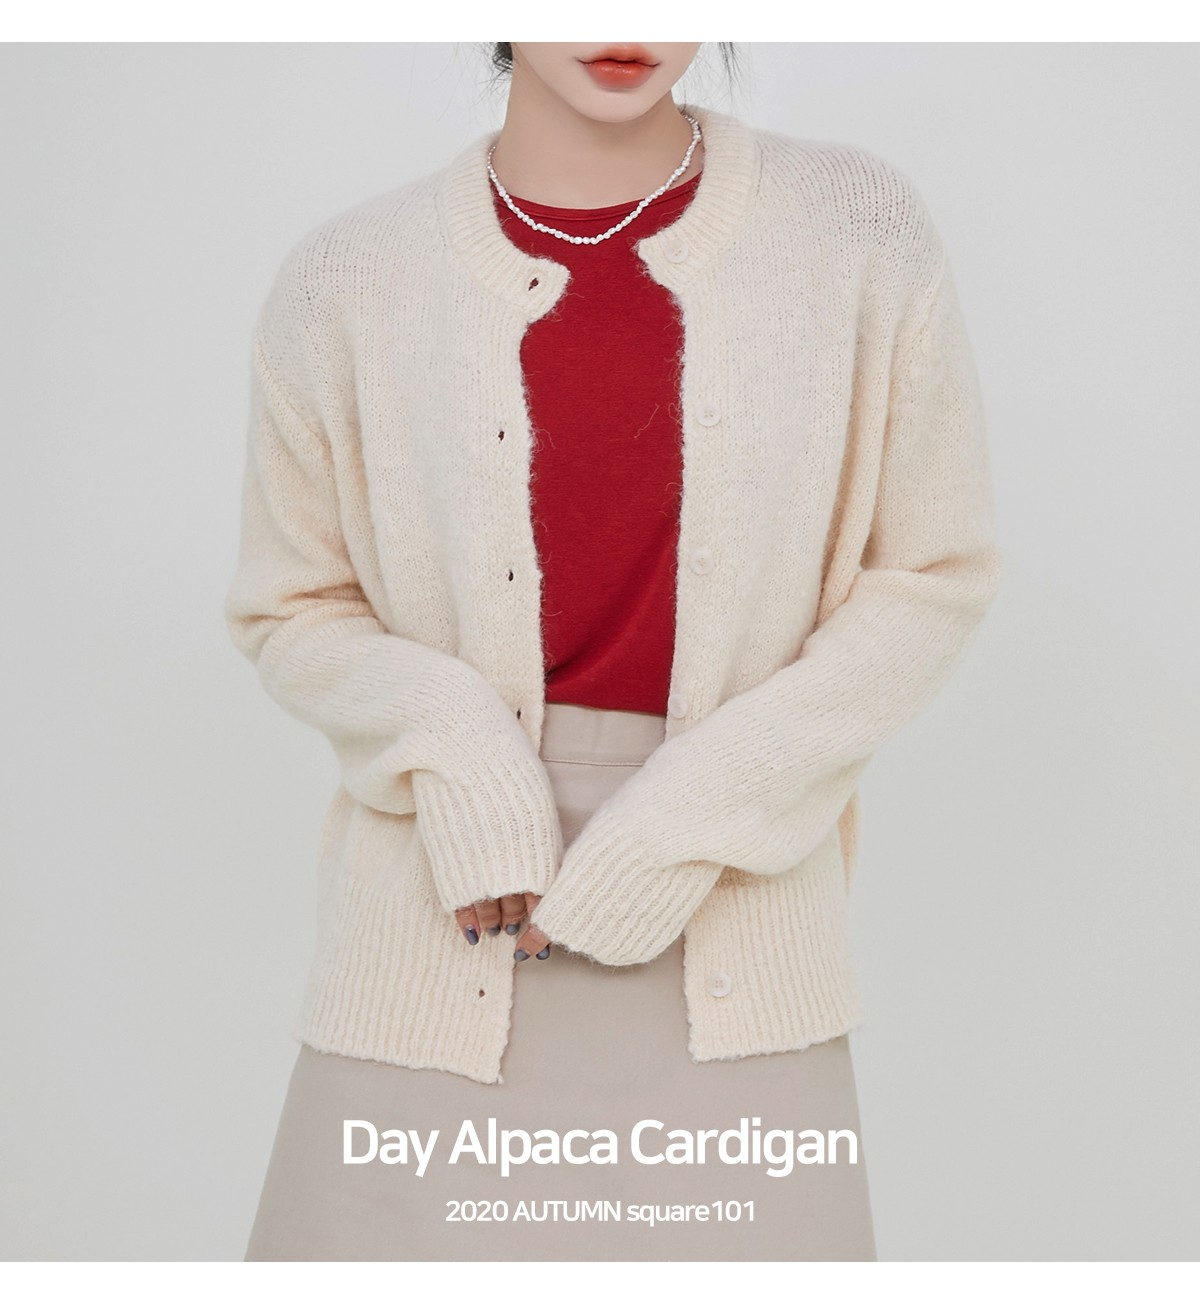 Day Alpaca Cardigan